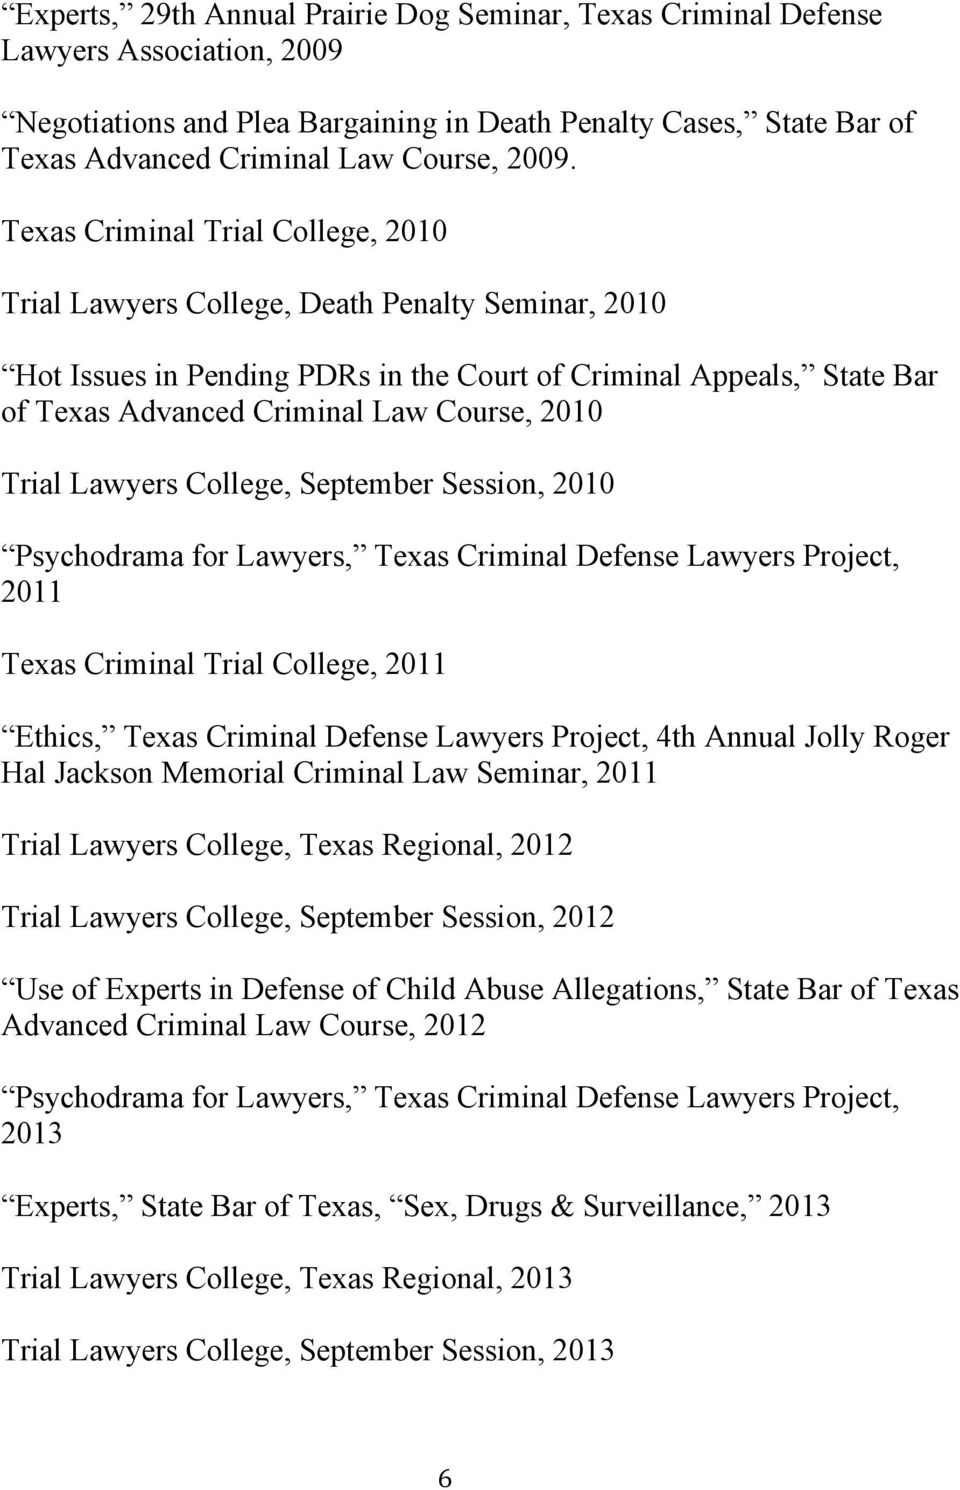 Course, 2010 Trial Lawyers College, September Session, 2010 Psychodrama for Lawyers, Texas Criminal Defense Lawyers Project, 2011 Texas Criminal Trial College, 2011 Ethics, Texas Criminal Defense